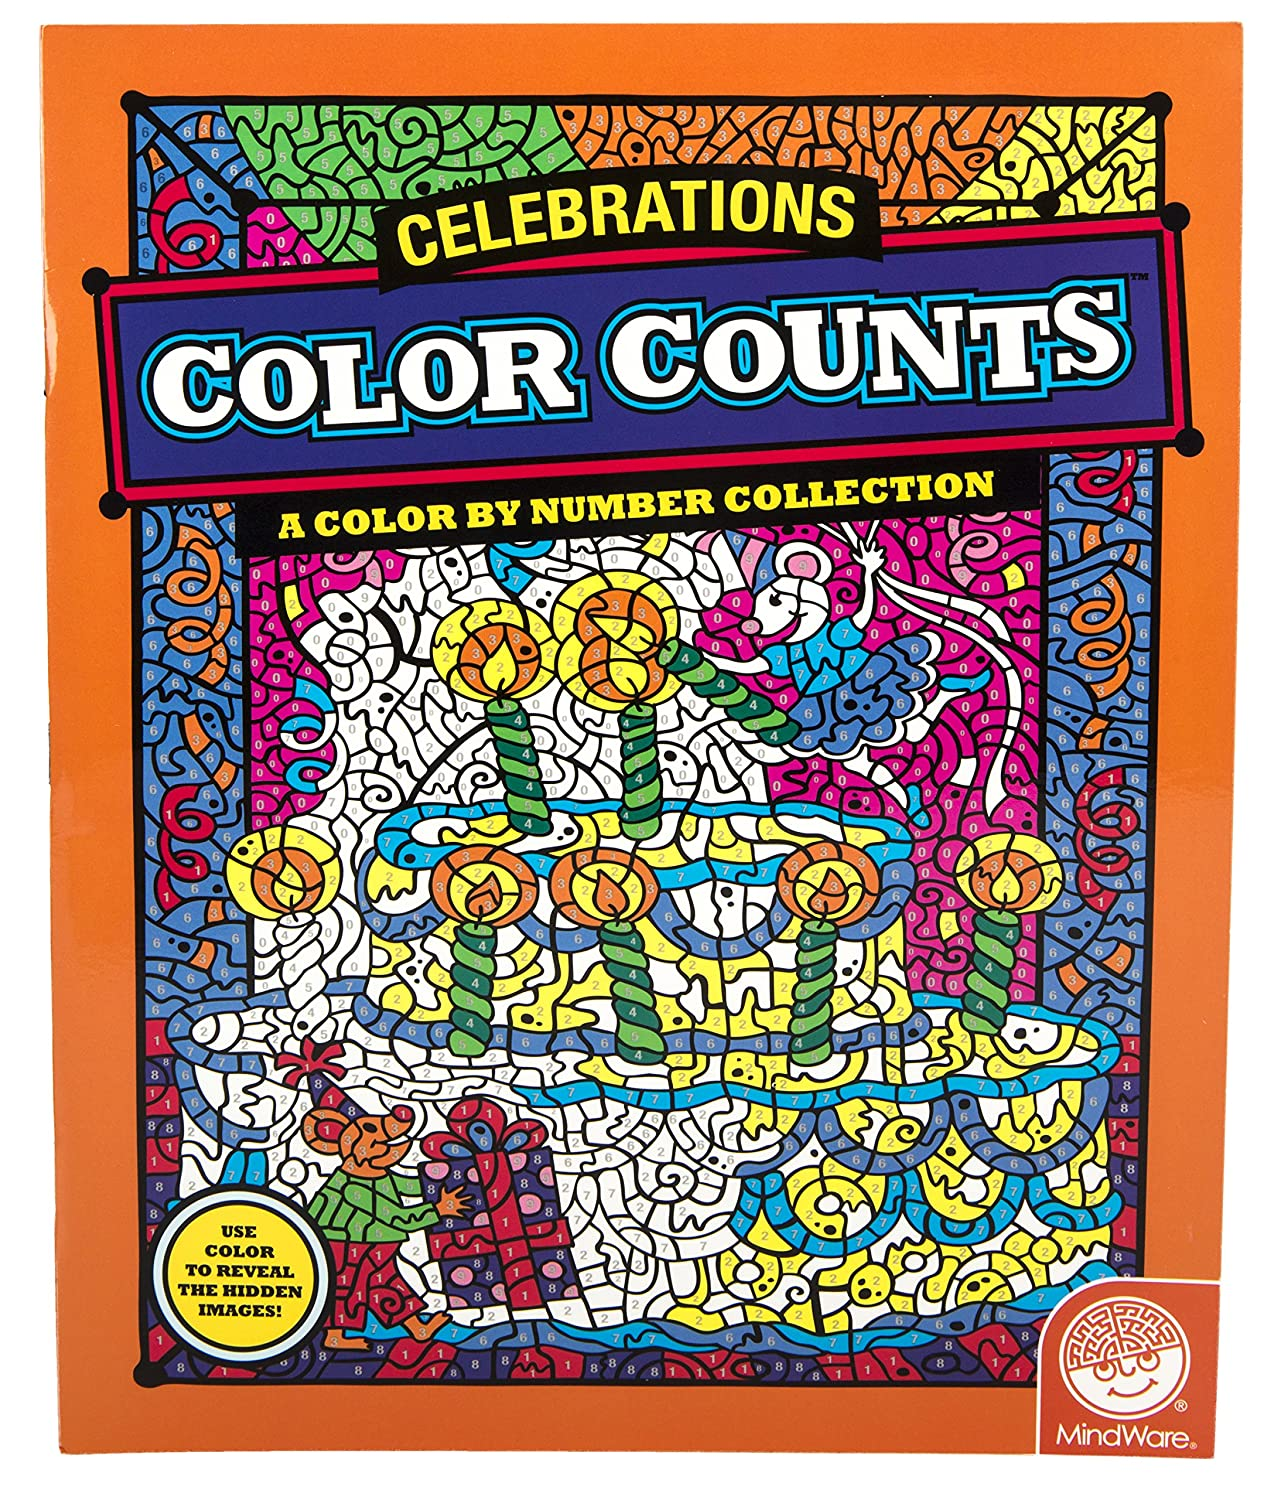 amazoncom color counts celebrations toys games - Mindware Coloring Books